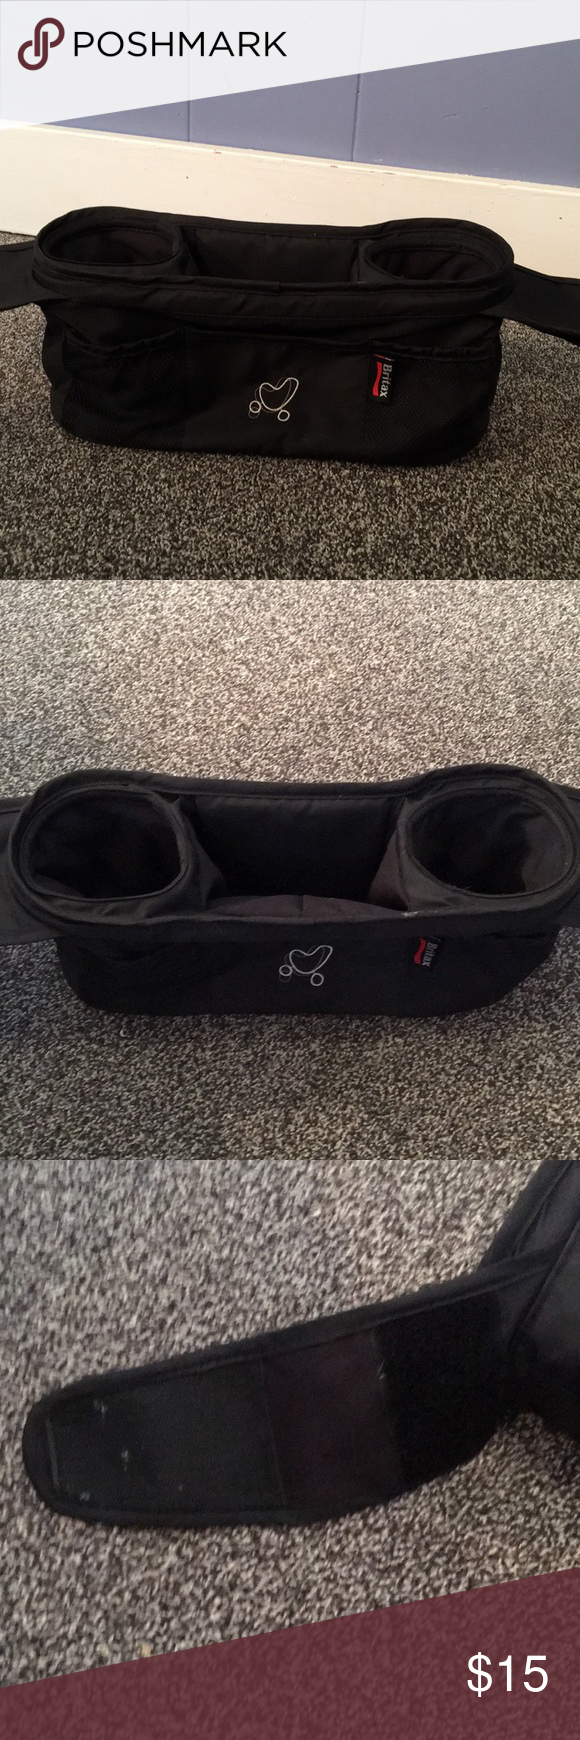 Britax cup holder accessory Excellent condition. Britax